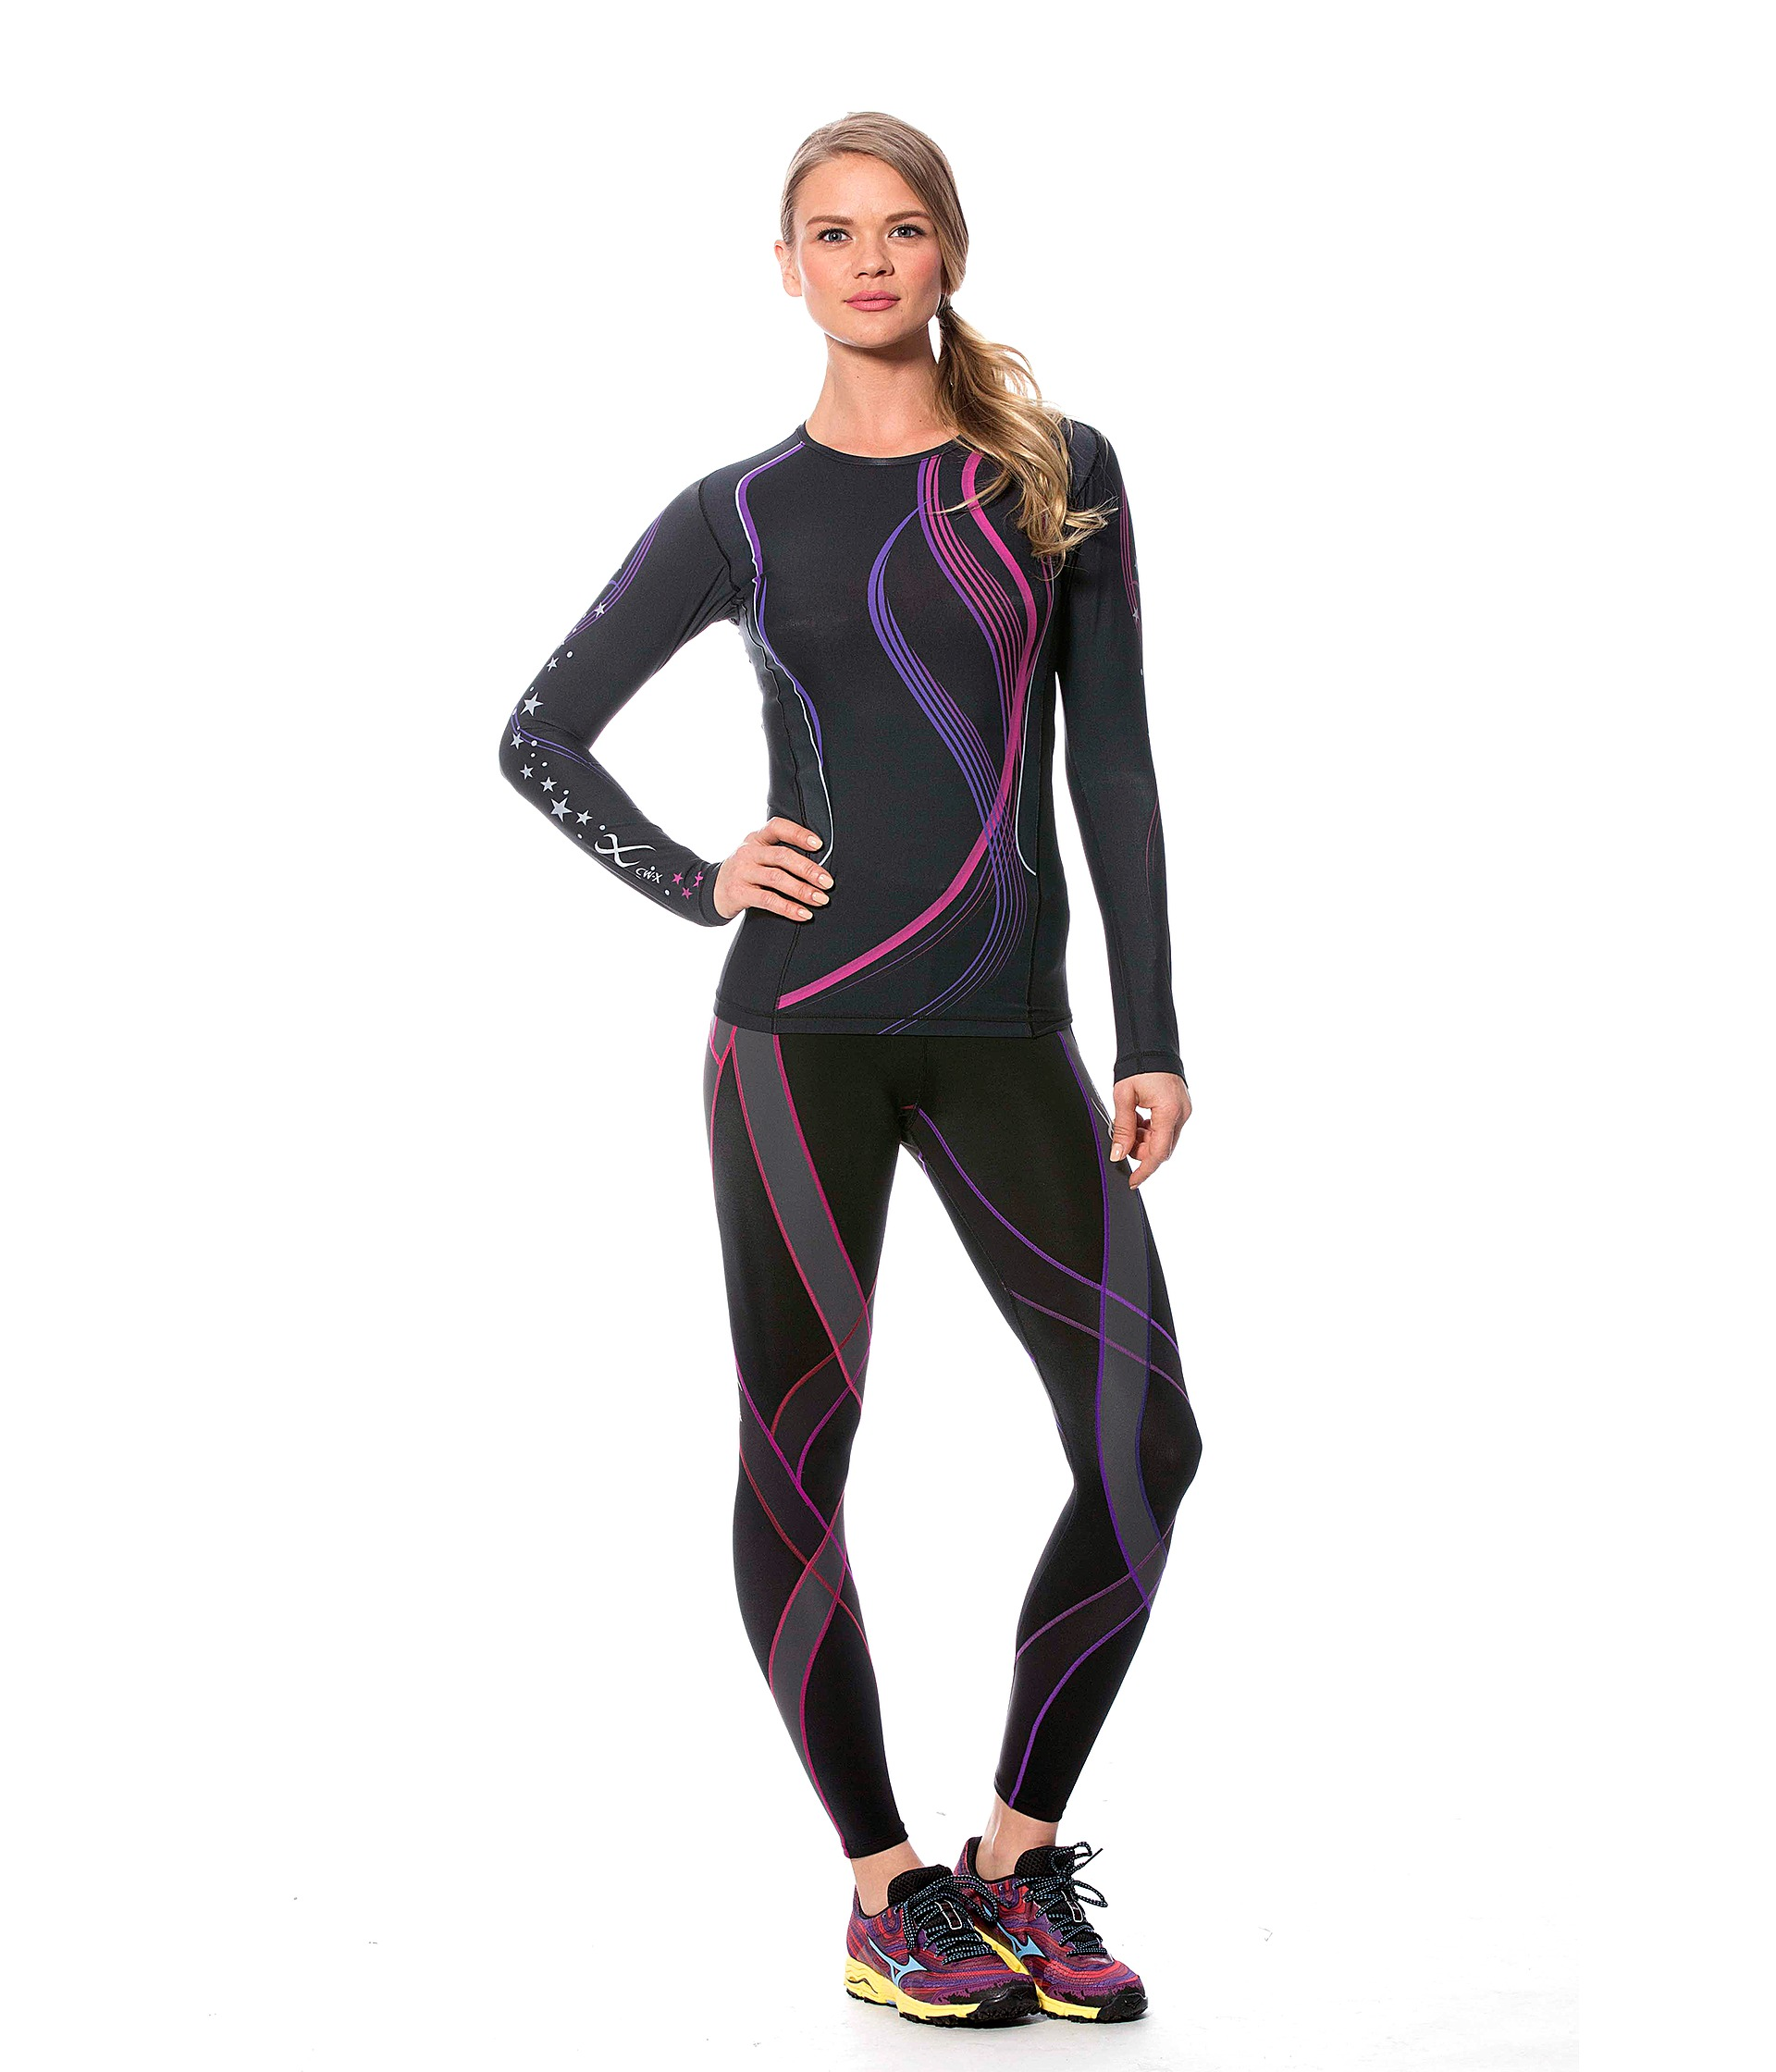 CW-X Endurance Generator Tights - Zappos.com Free Shipping ...